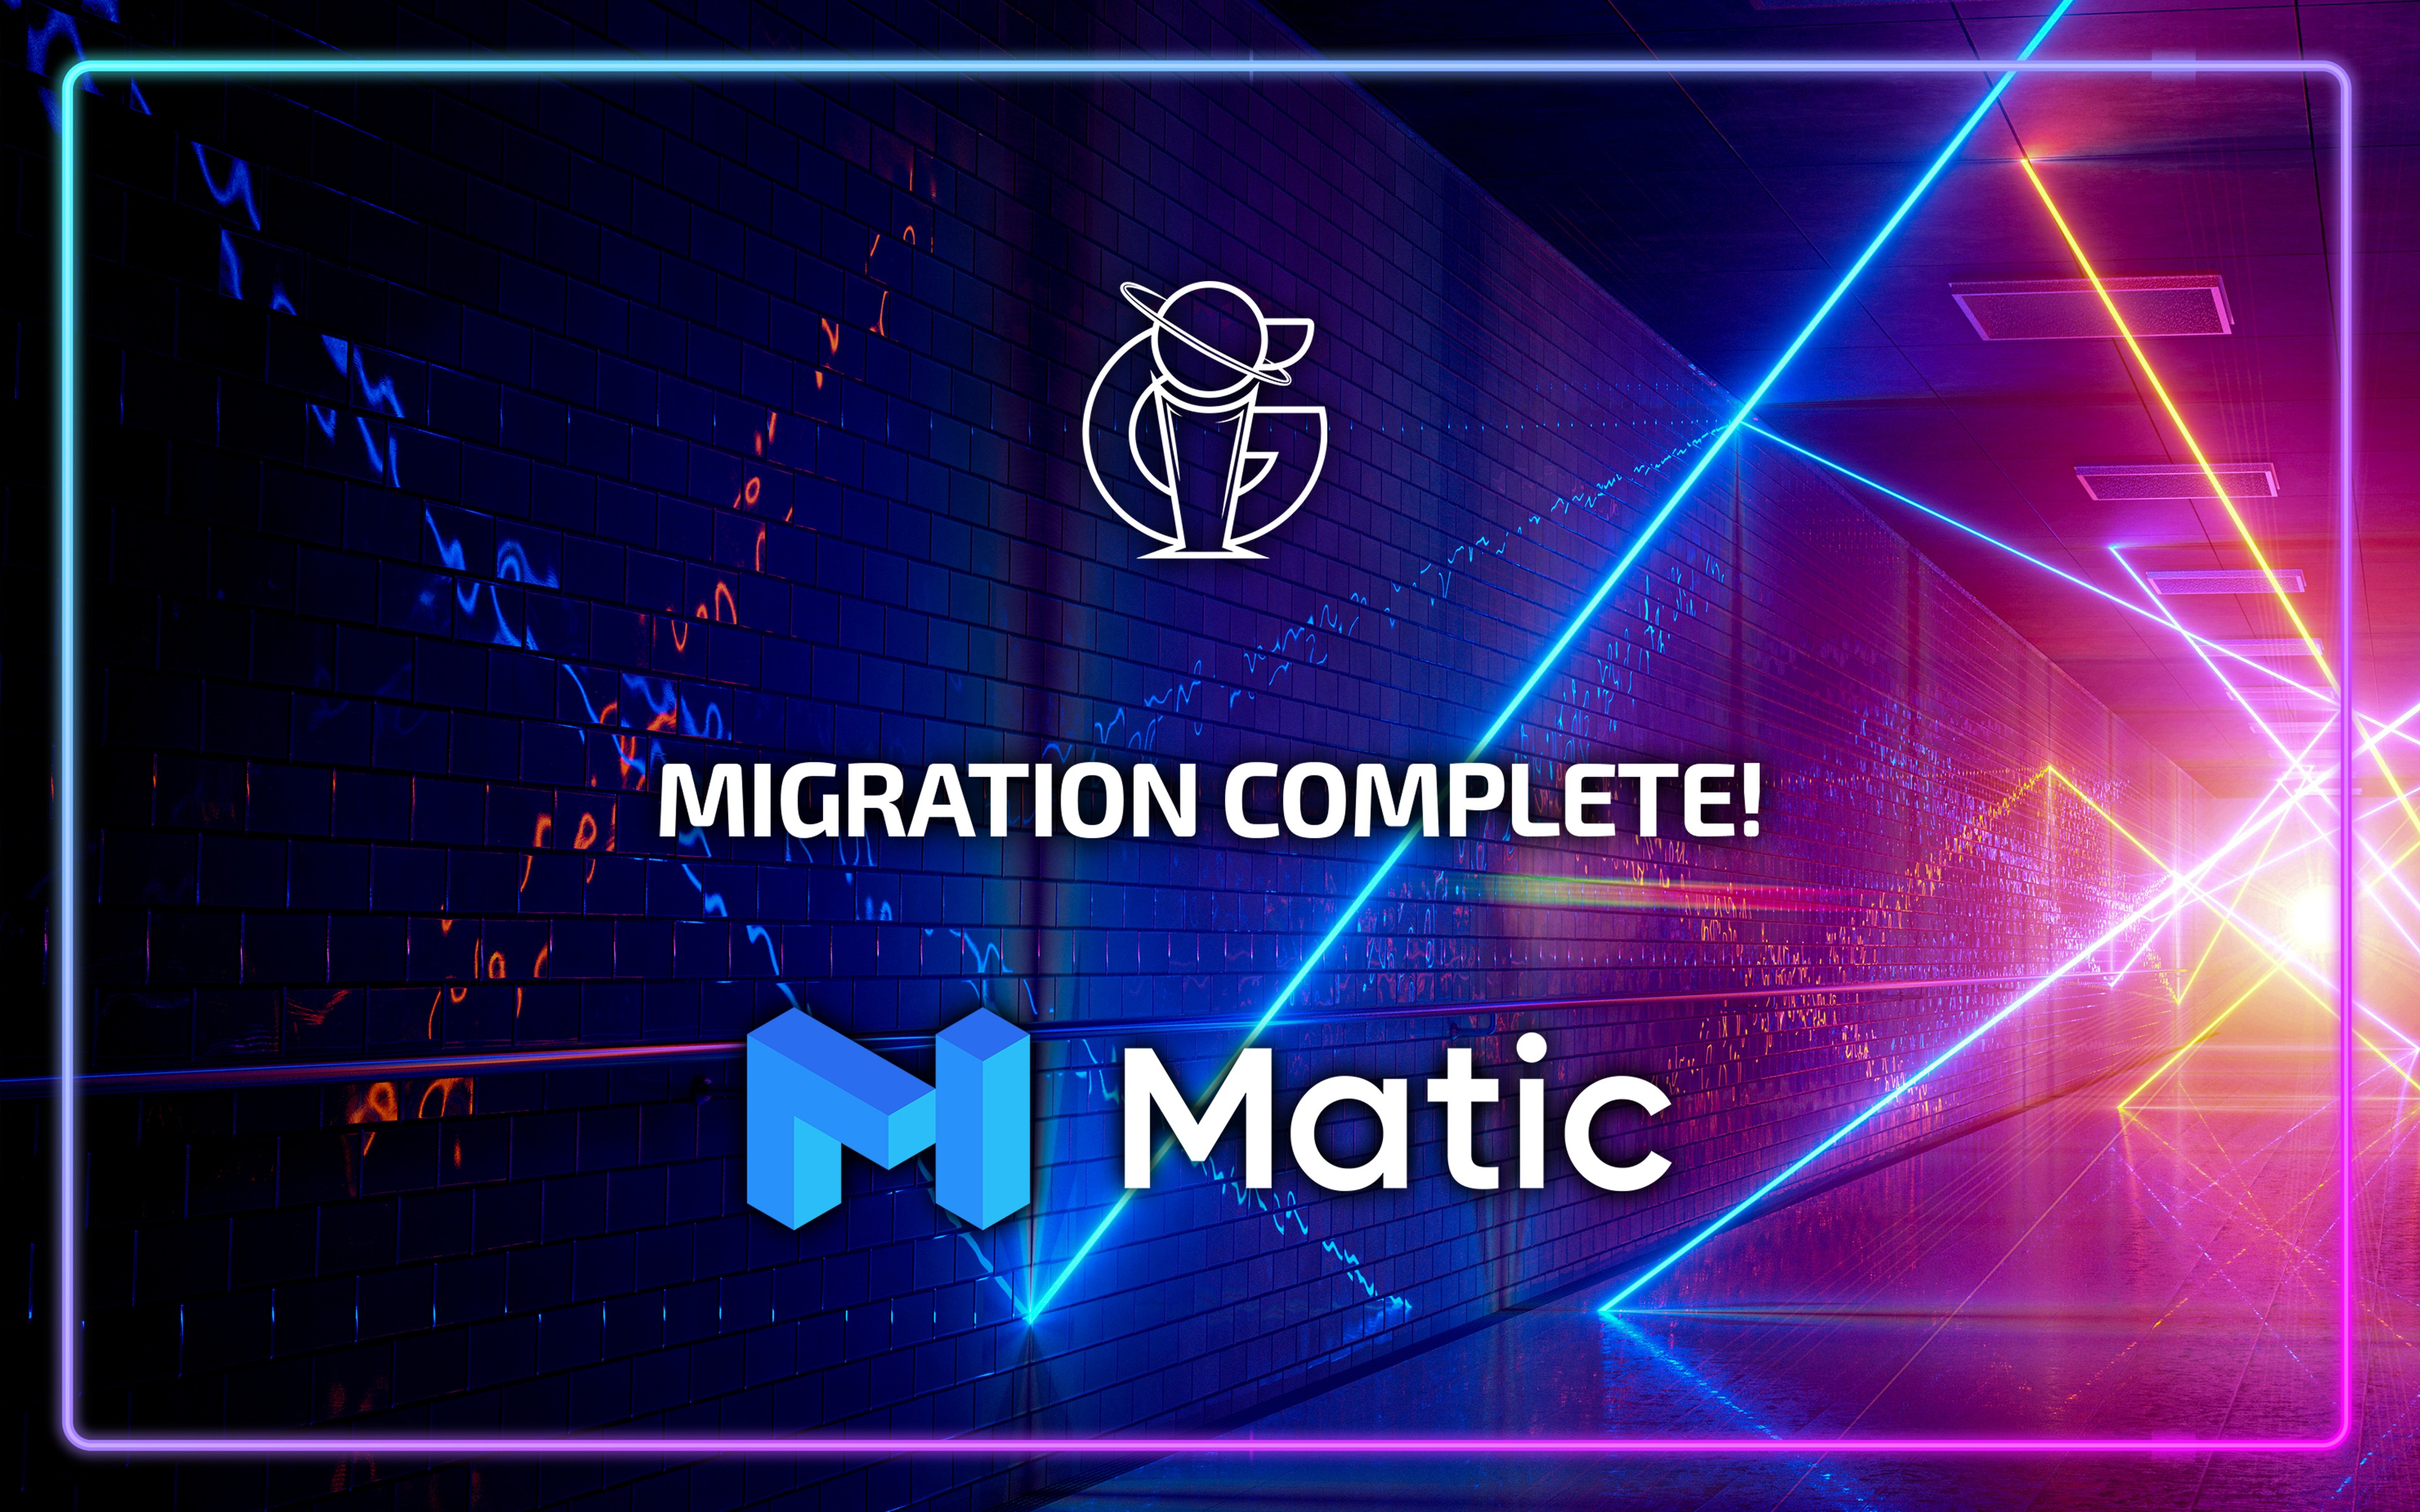 IGGalaxy has officially migrated to Matic network!